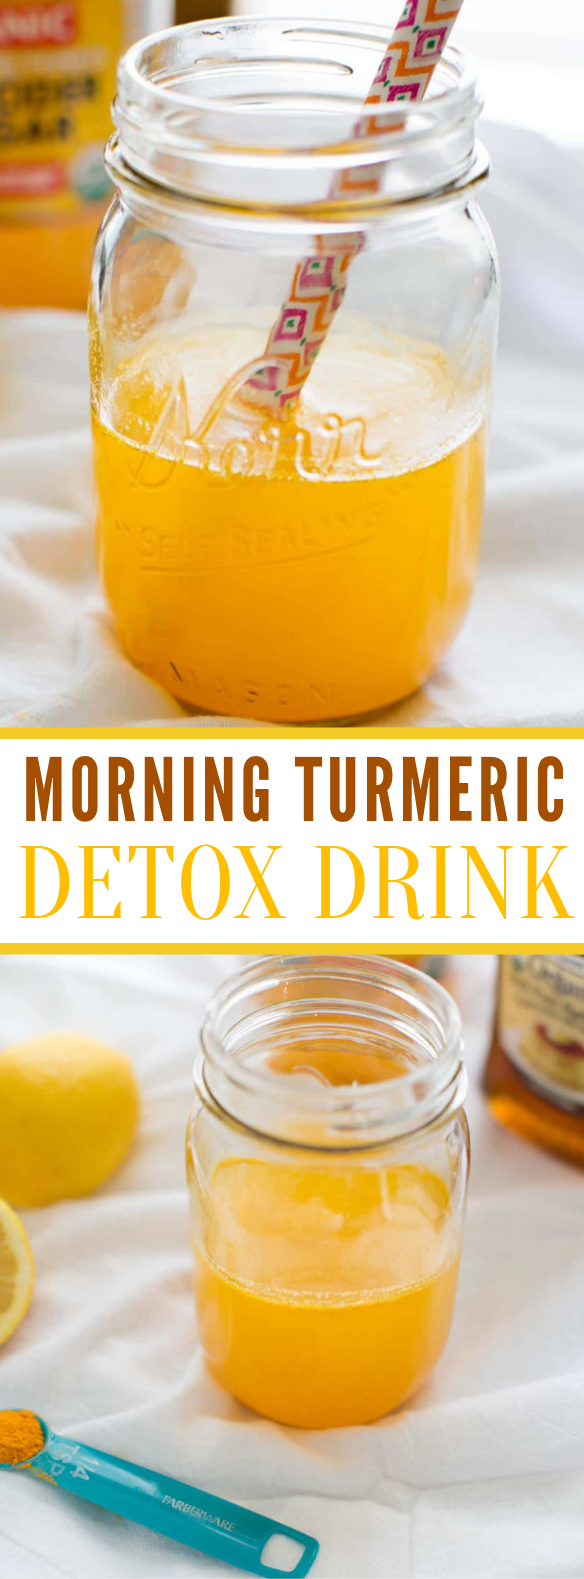 Morning Turmeric Detox Drink #healthydrinks #applecider